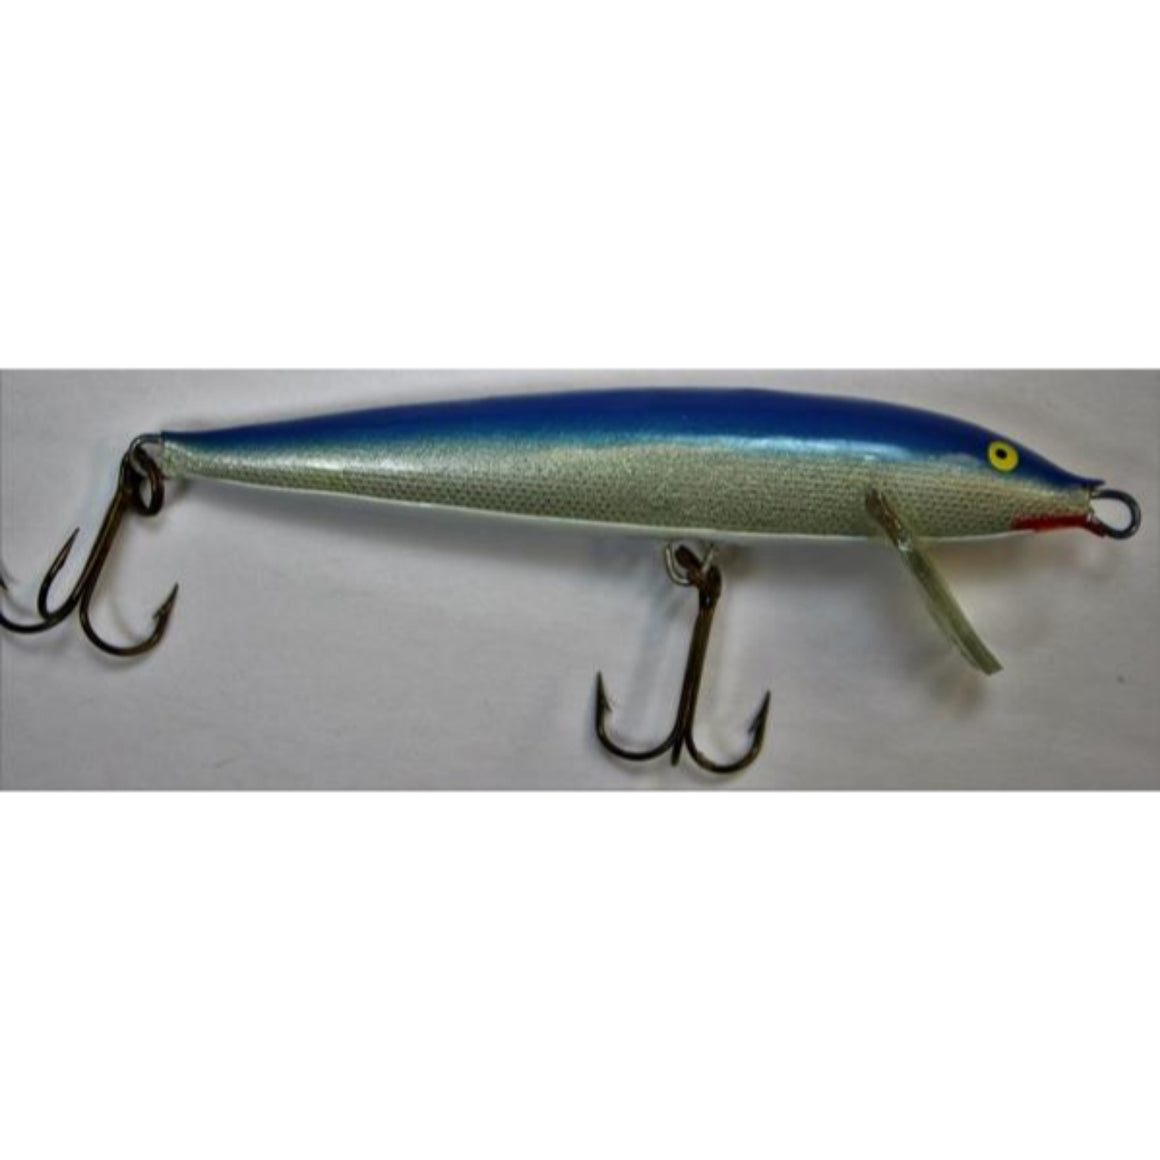 Blue Rapala Countdown Fishing Lure Made in Finland